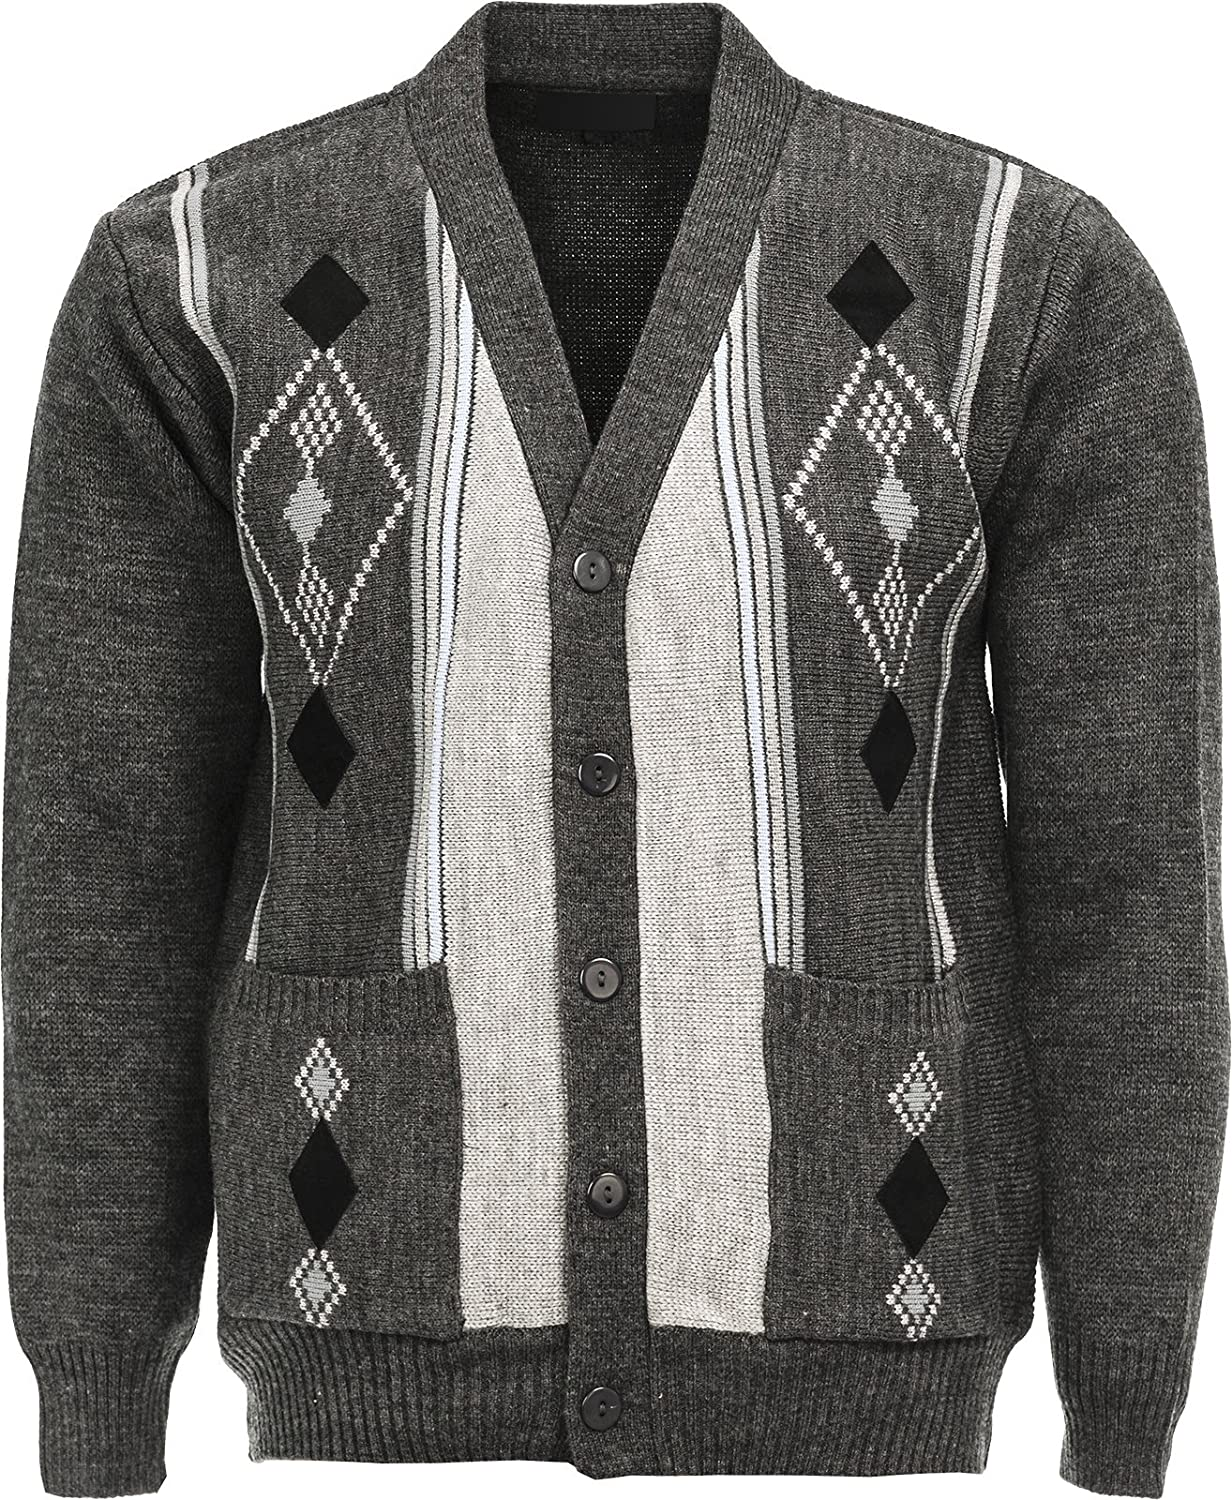 Mens Knitted Cardigan Classic Style V Neck Button WITH POCKETS